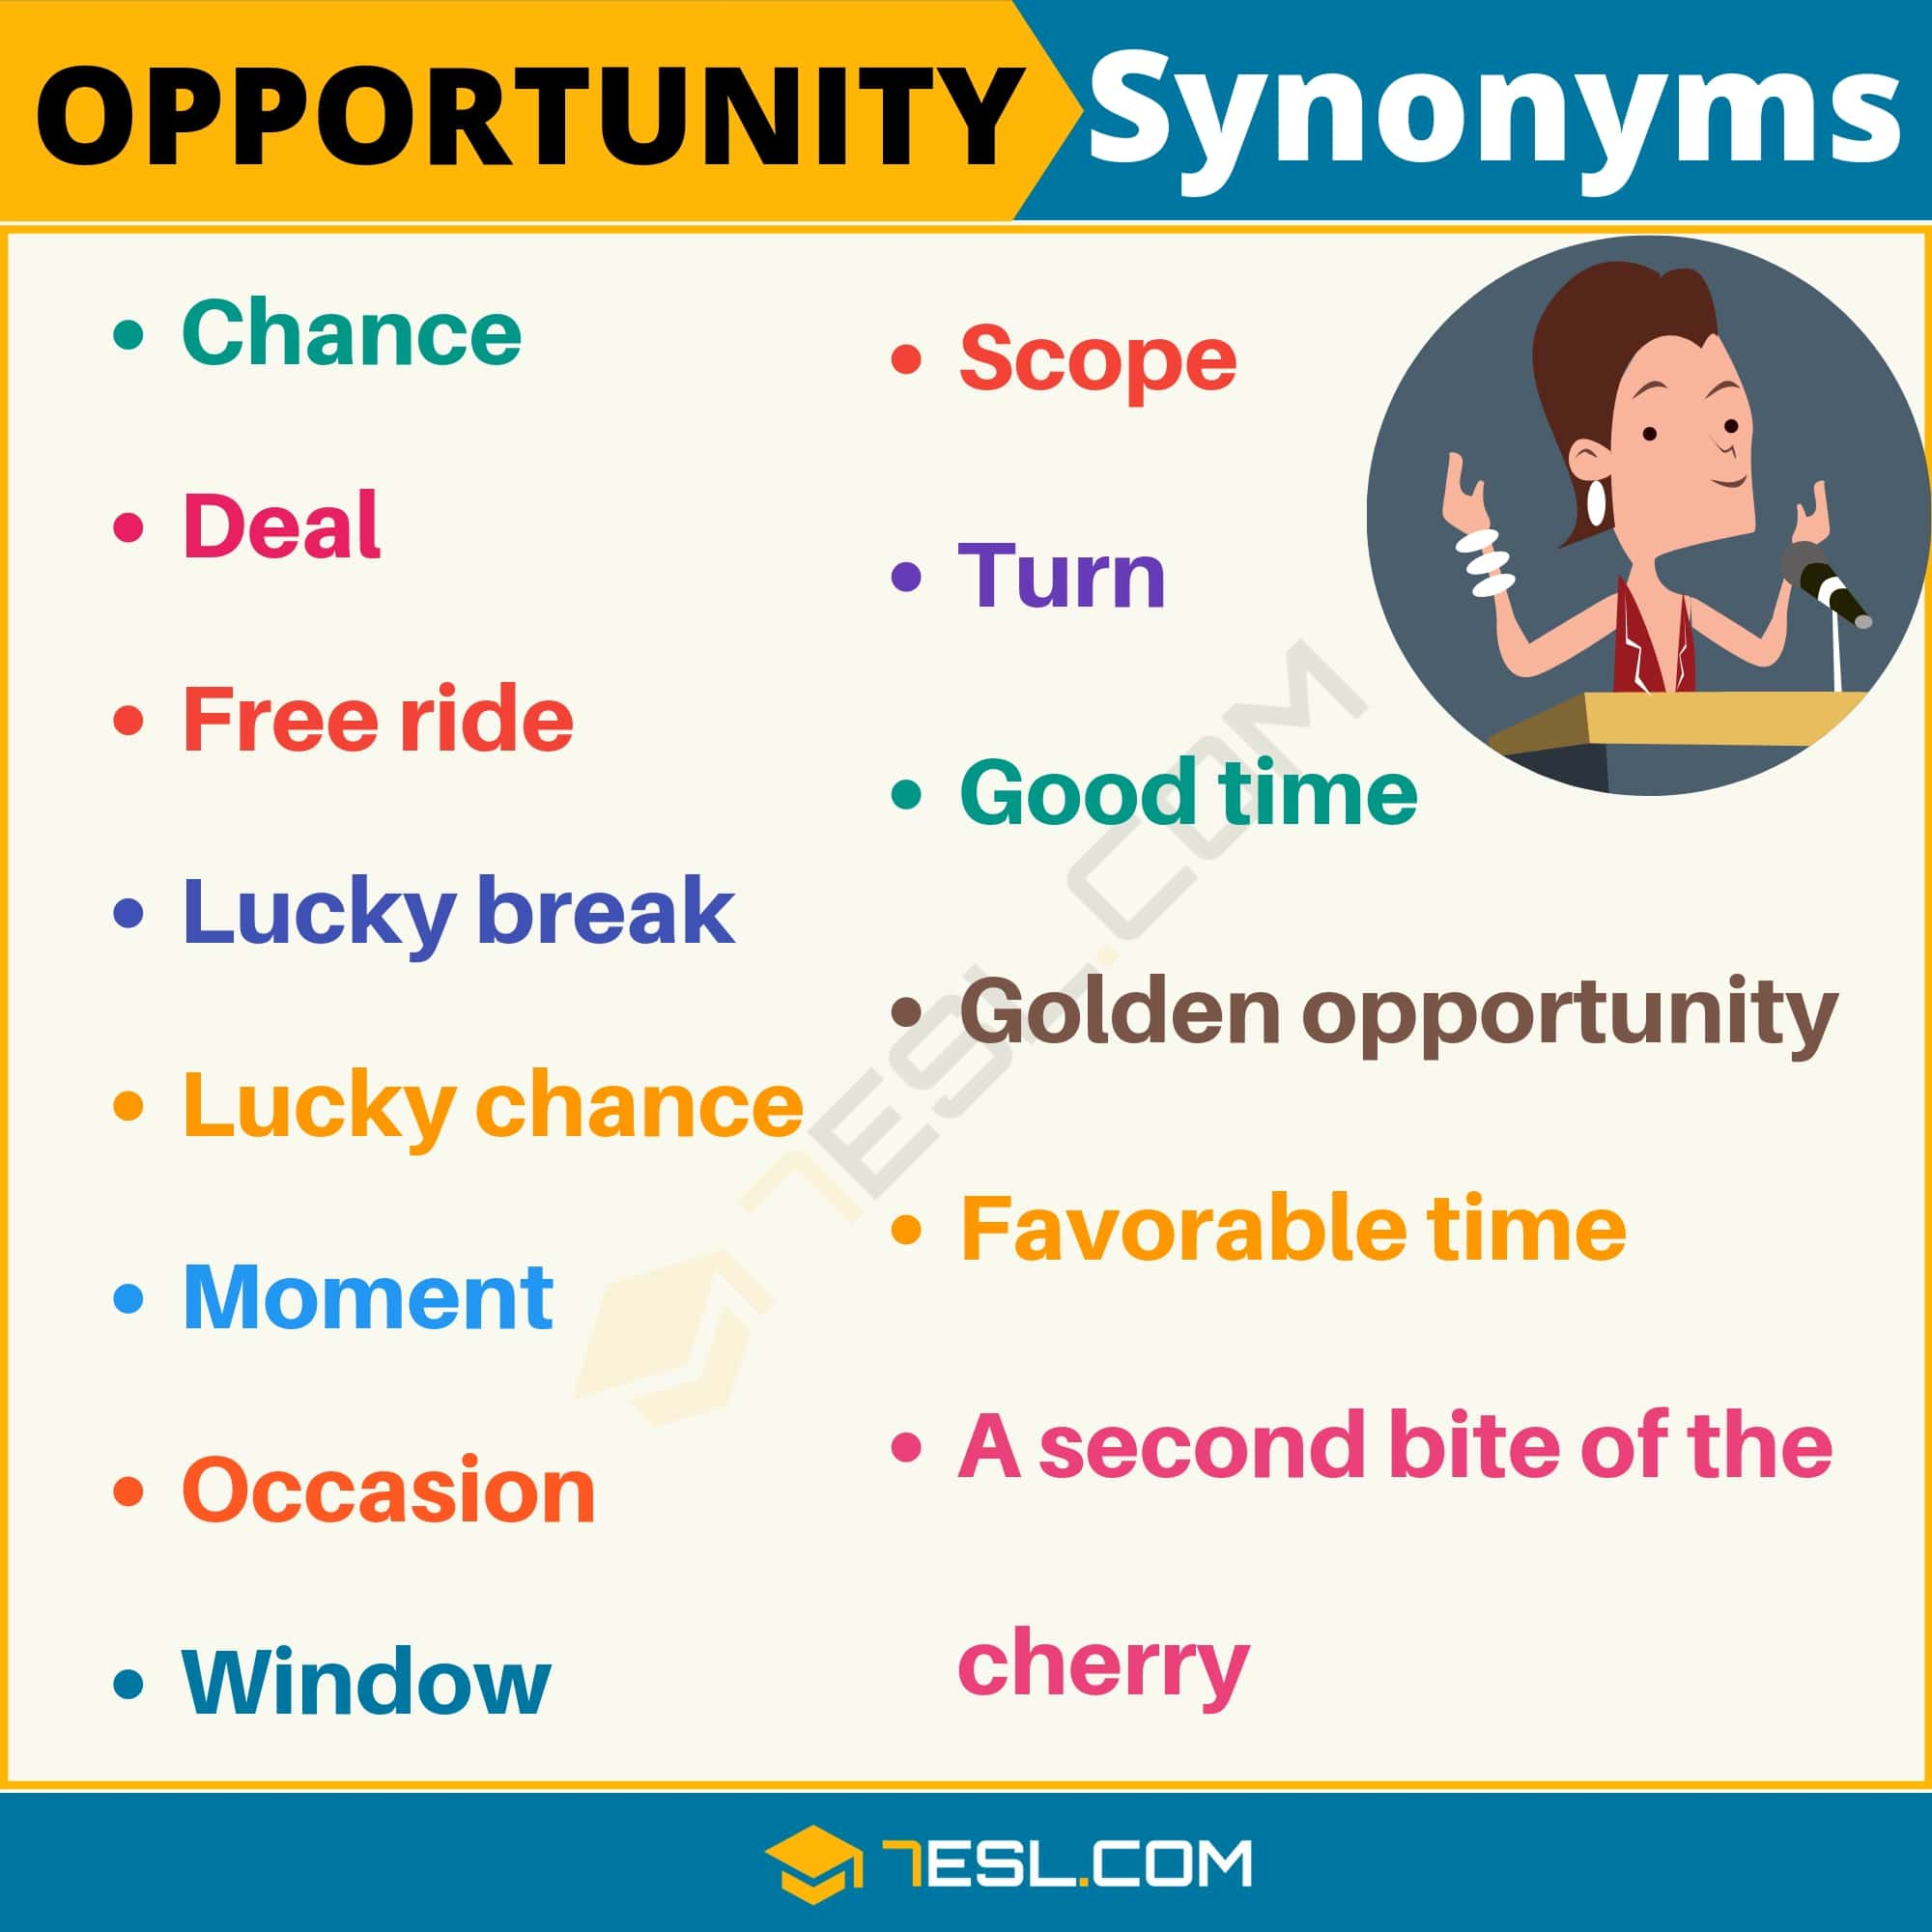 OPPORTUNITY Synonym: List of 14 Synonyms for Opportunity in English